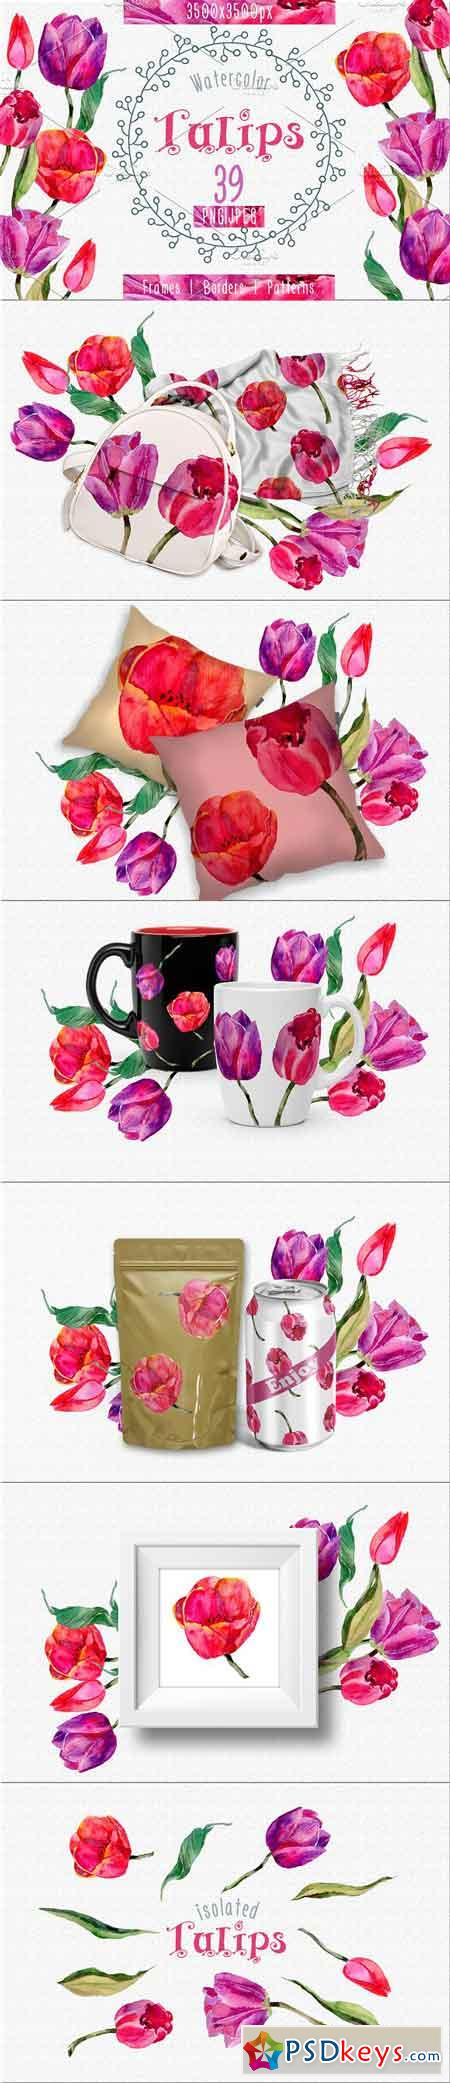 Tulips PNG watercolor flower set 2392711